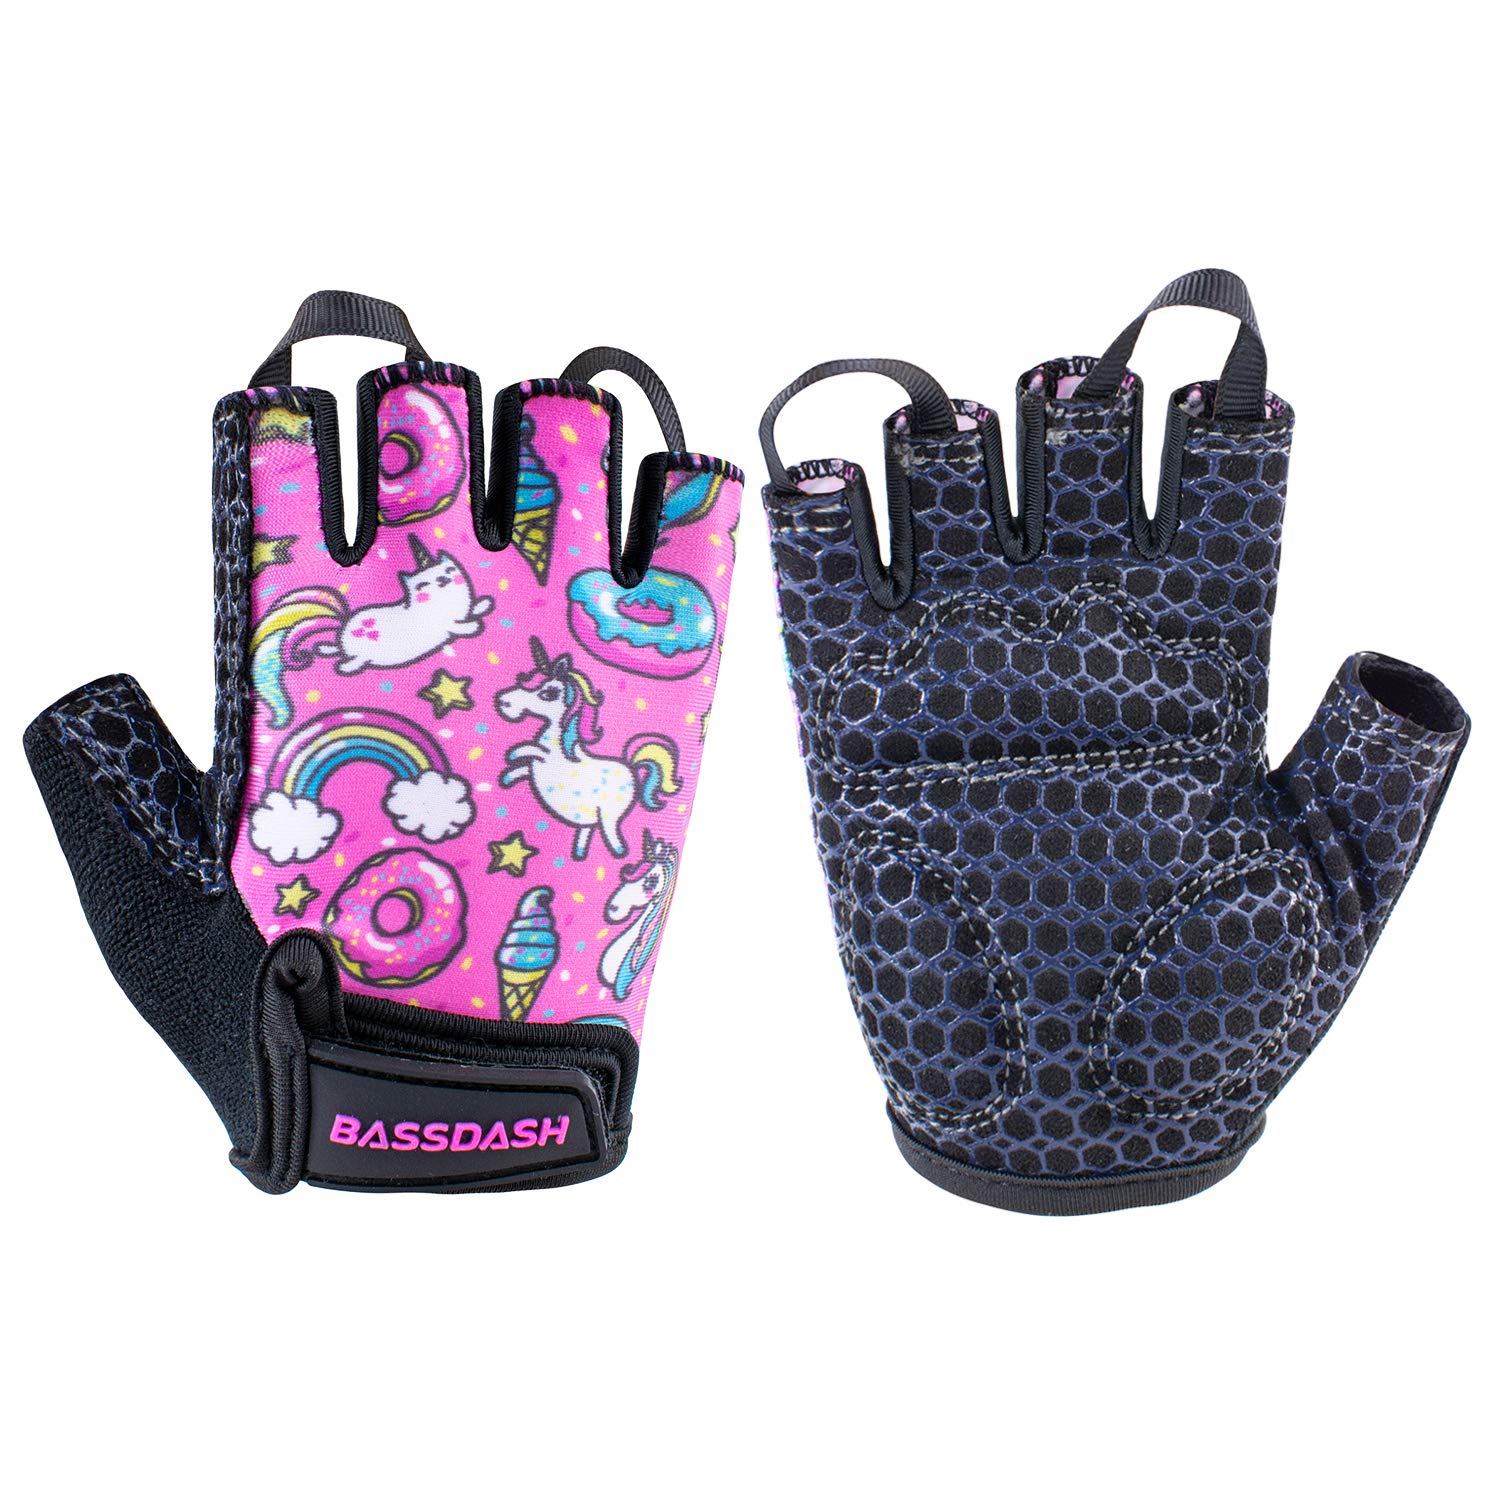 Bassdash Kids Gloves with Padded Grippy Palm for Bicycles Fishing for 1-8 Years Old Boys Girls